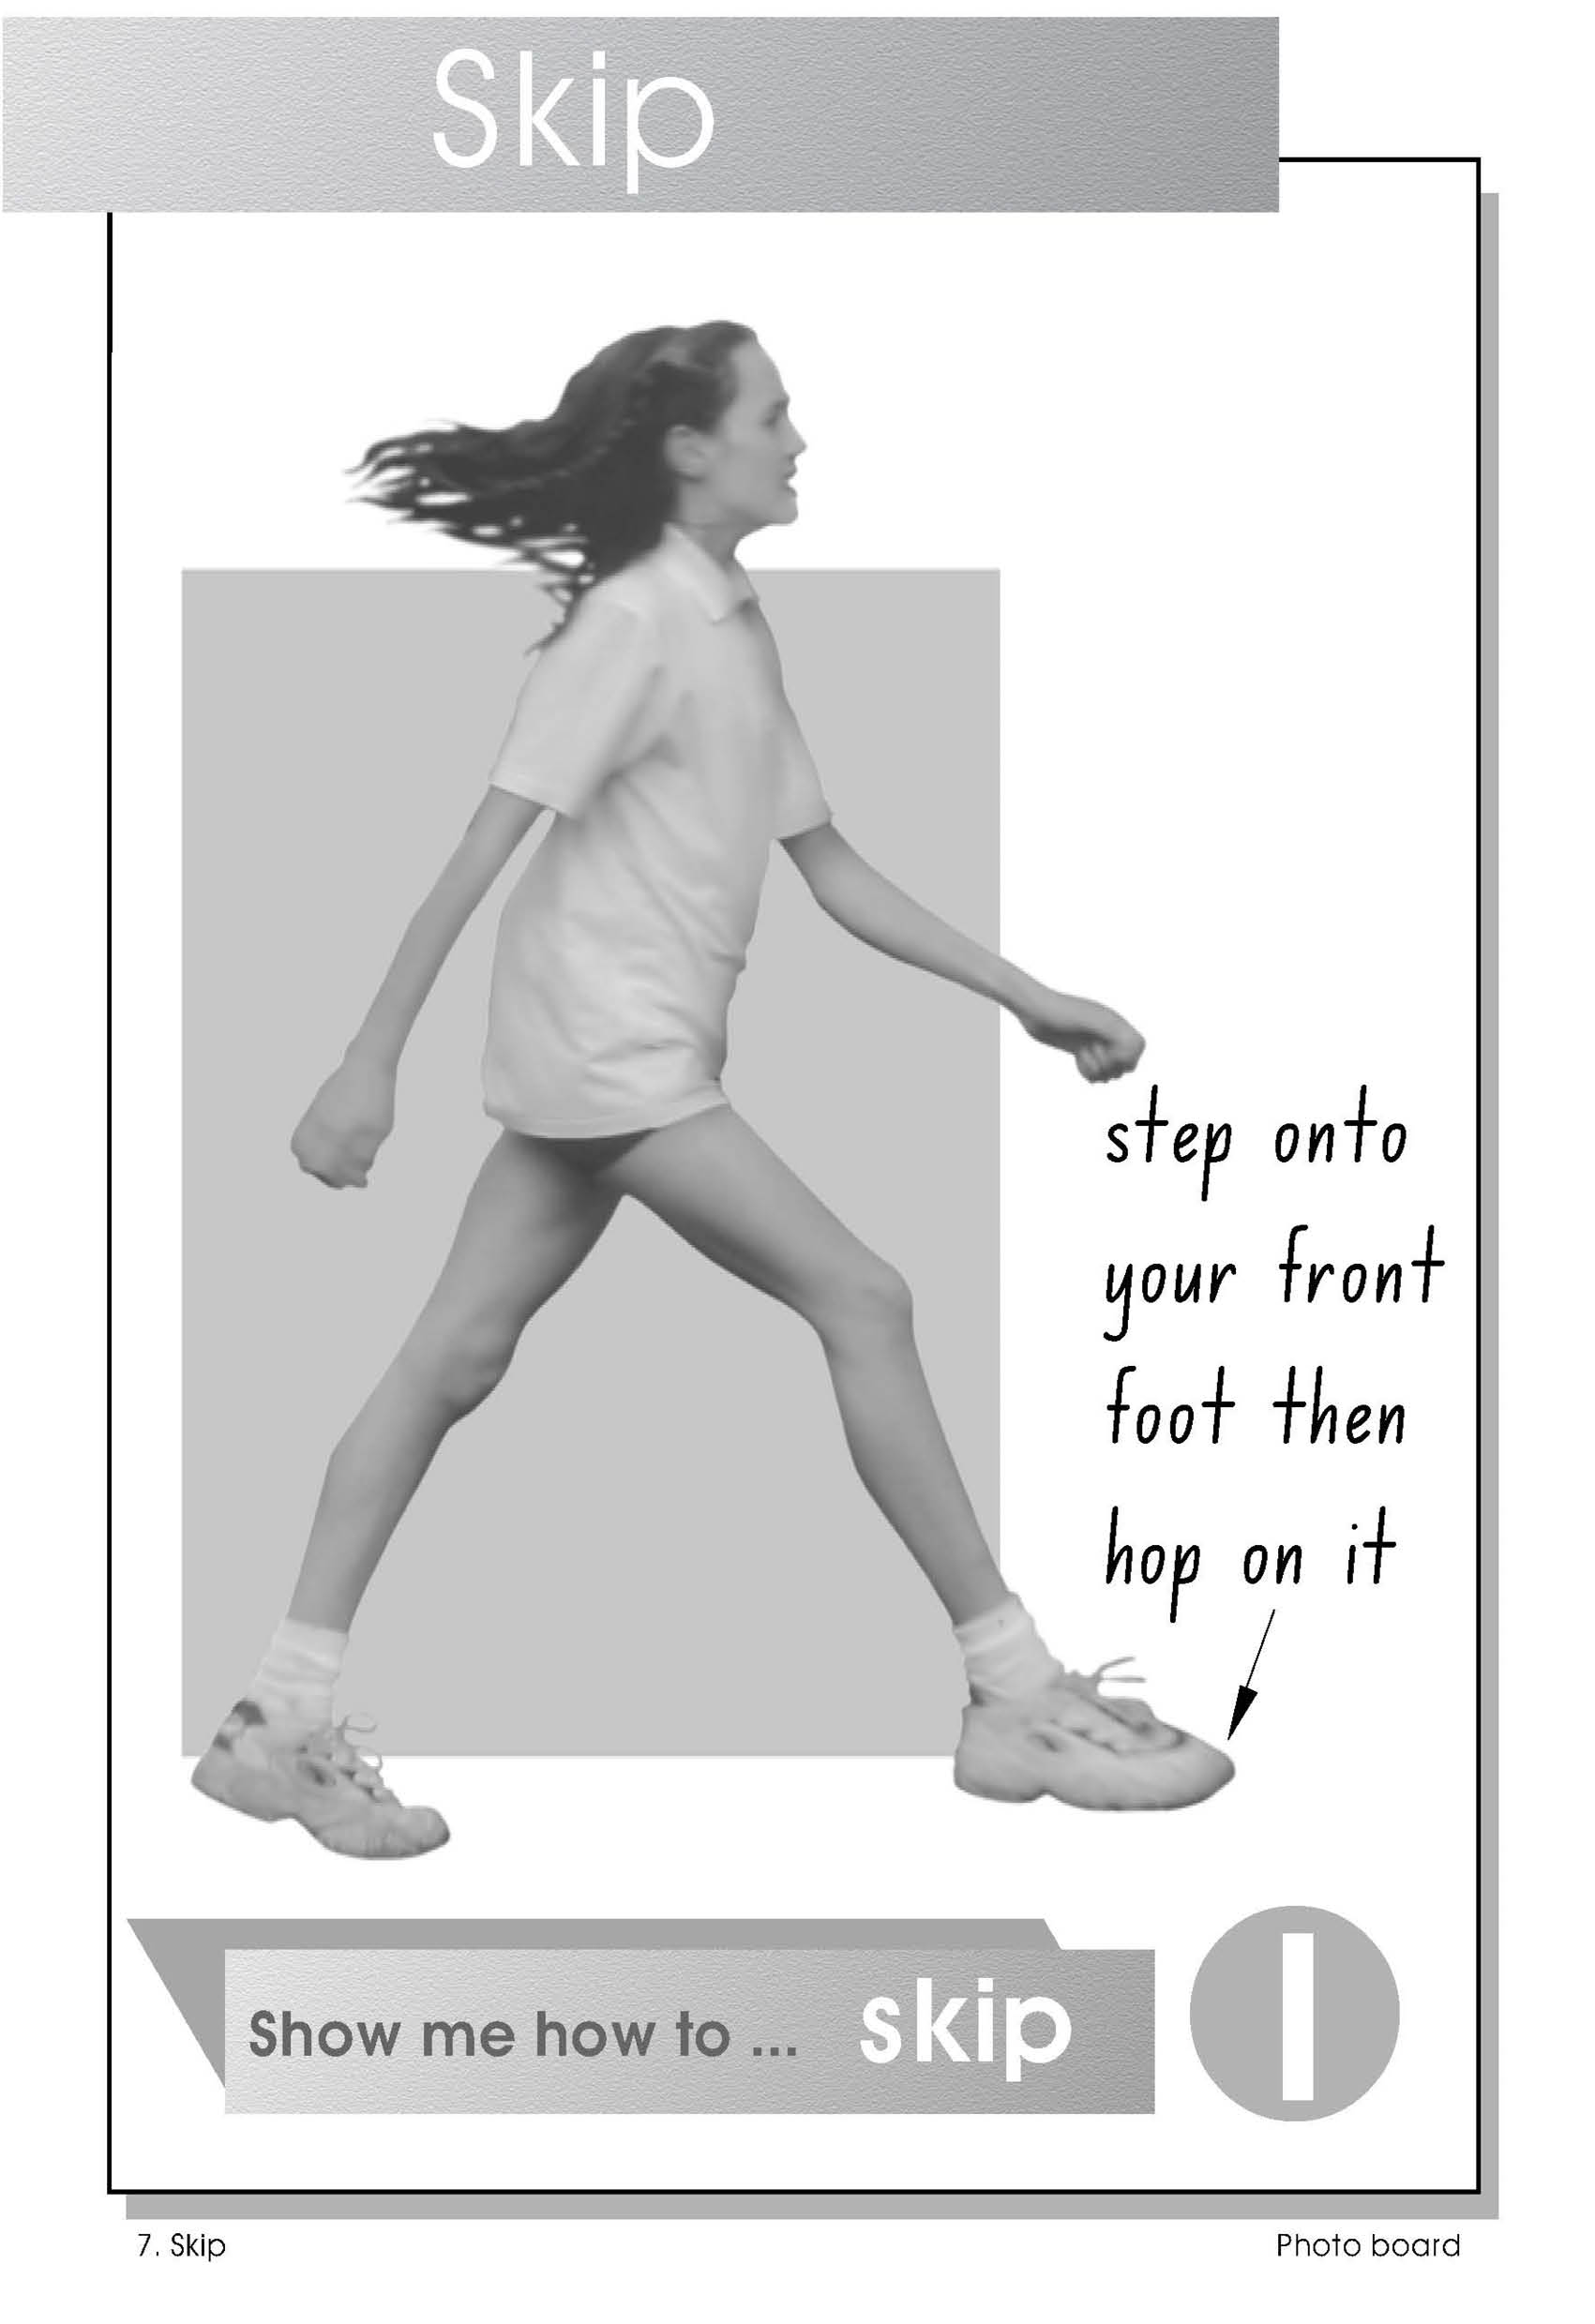 Observational poster - how to skip